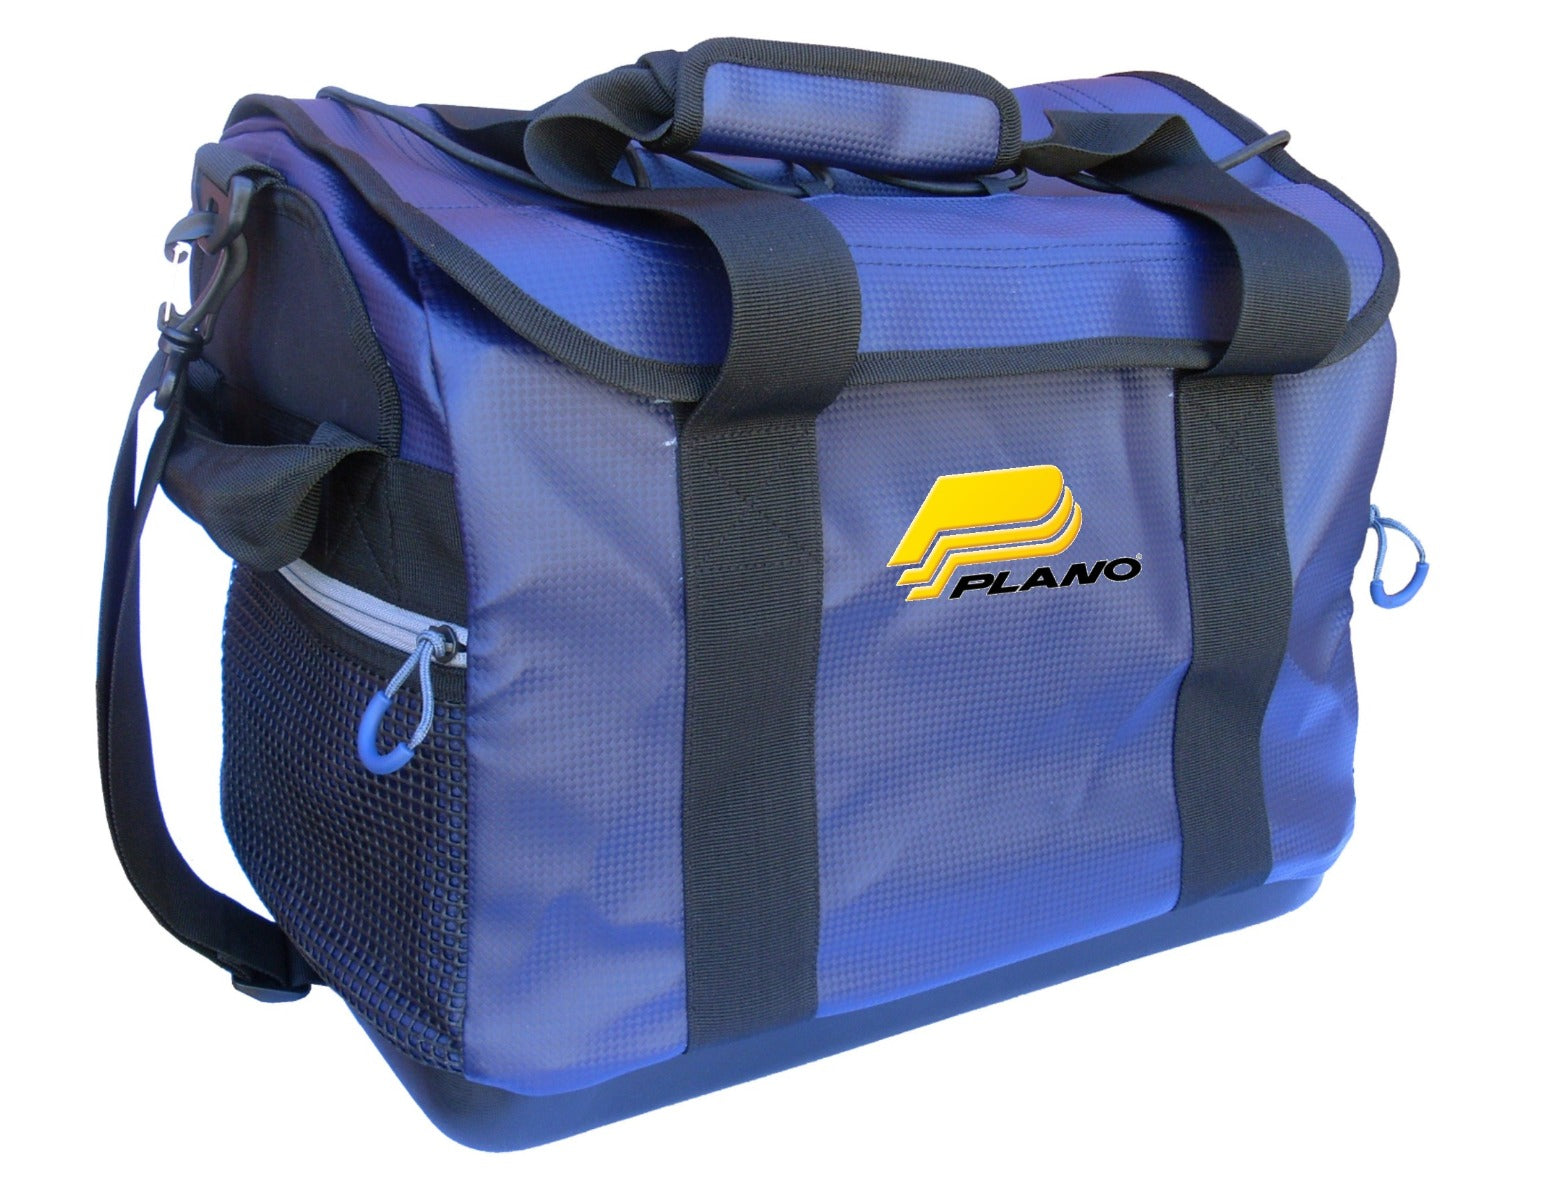 Plano PVC Waterproof Bag